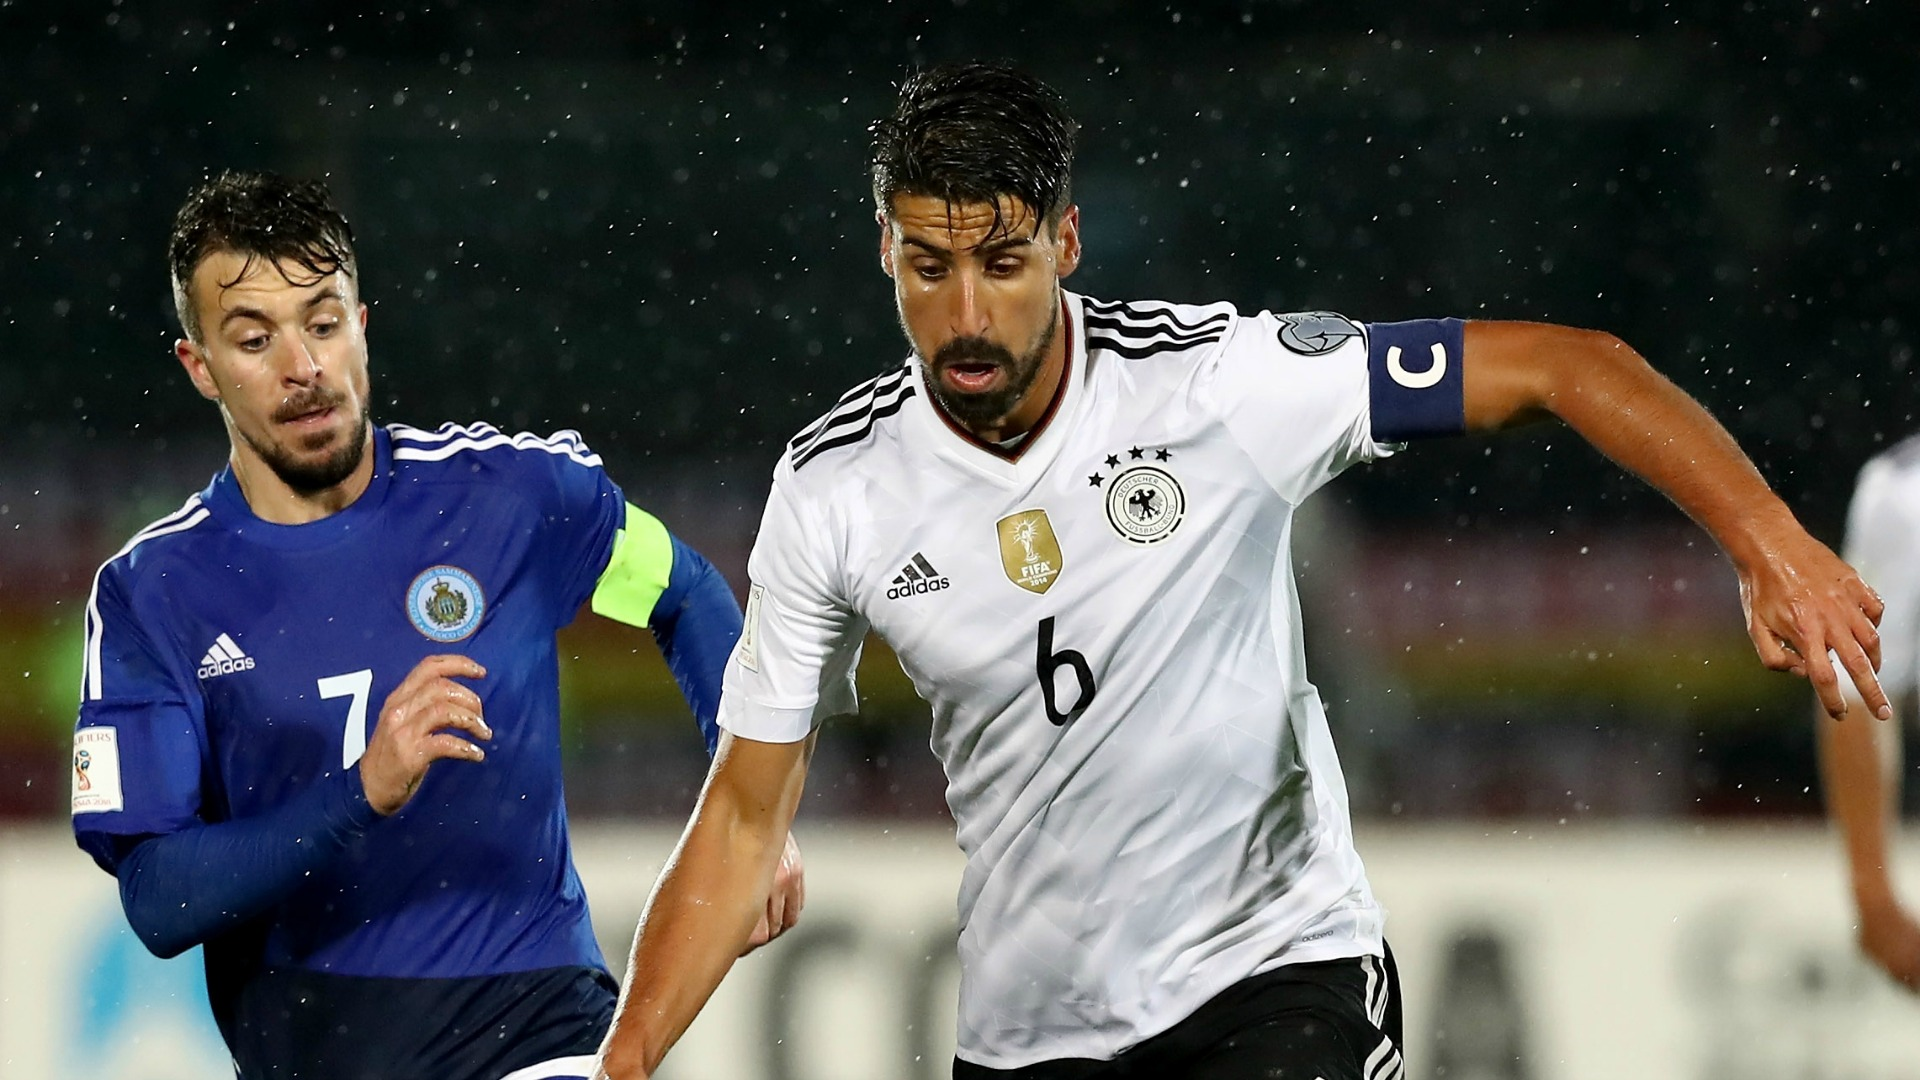 Khedira Germany